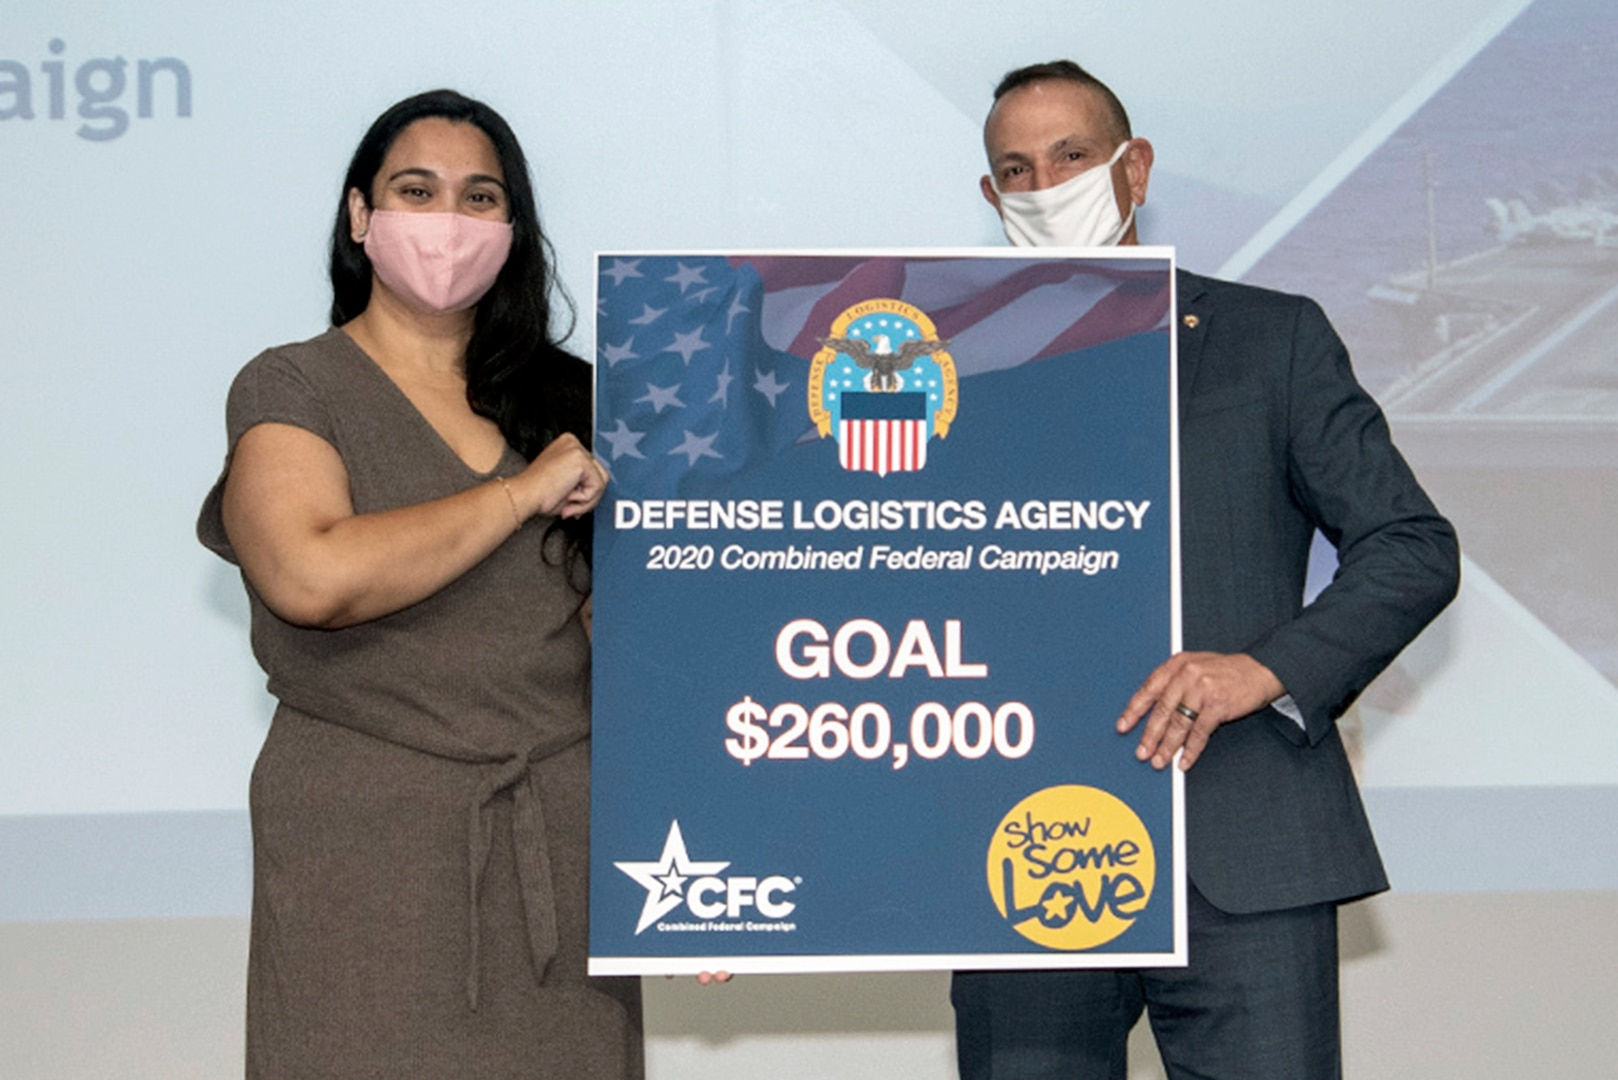 Man and woman wearing face masks over their mouth and nose hold a blue sign that reads Defense Logistics Agency 2020 Combined Federal Campaign Goal $260,000.